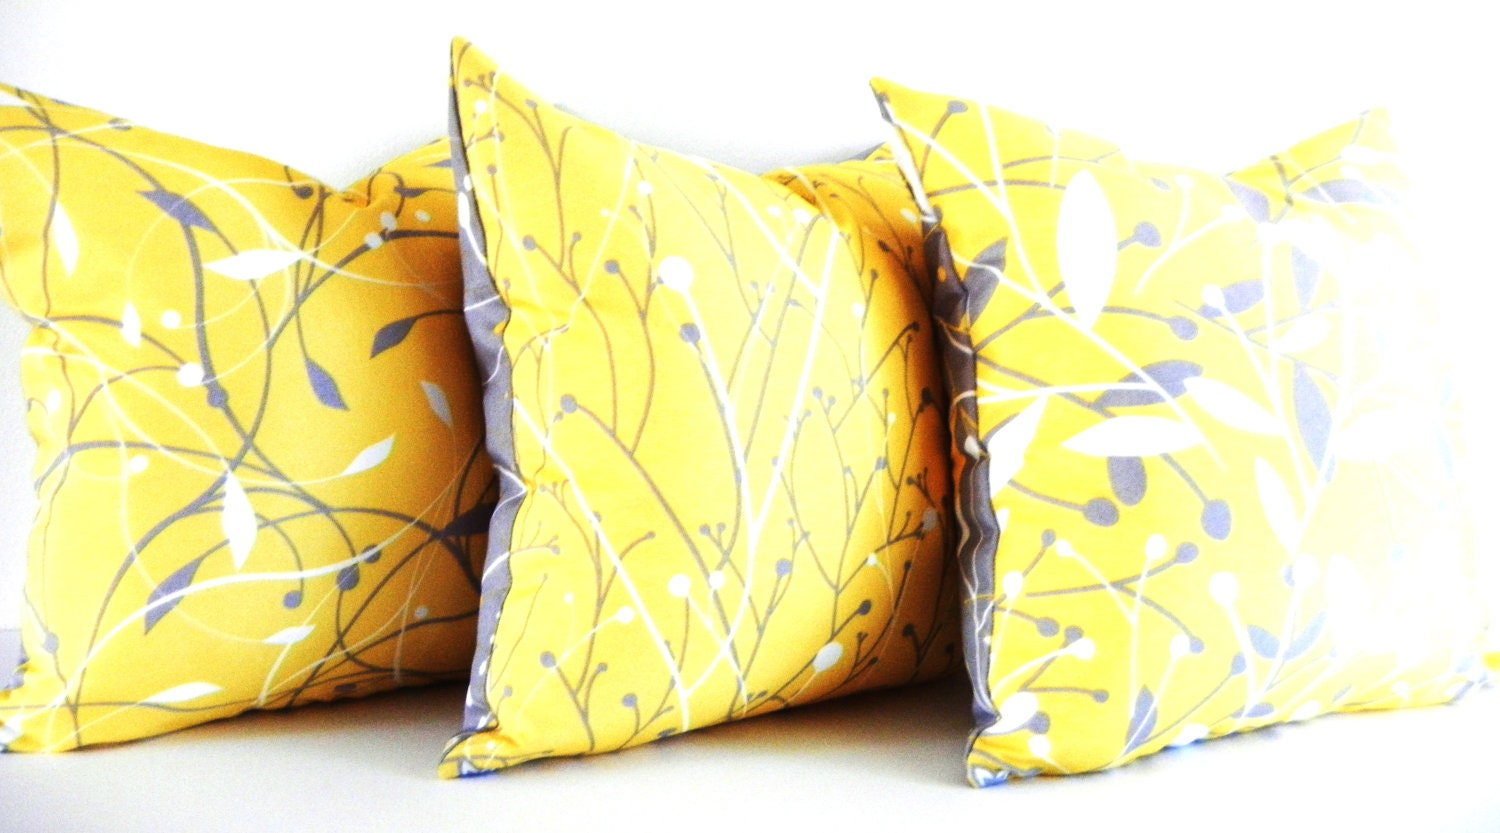 Throw Pillows Groupon : Yellow Pillows Gray Pillows Decorative Pillows by CityGirlsDecor